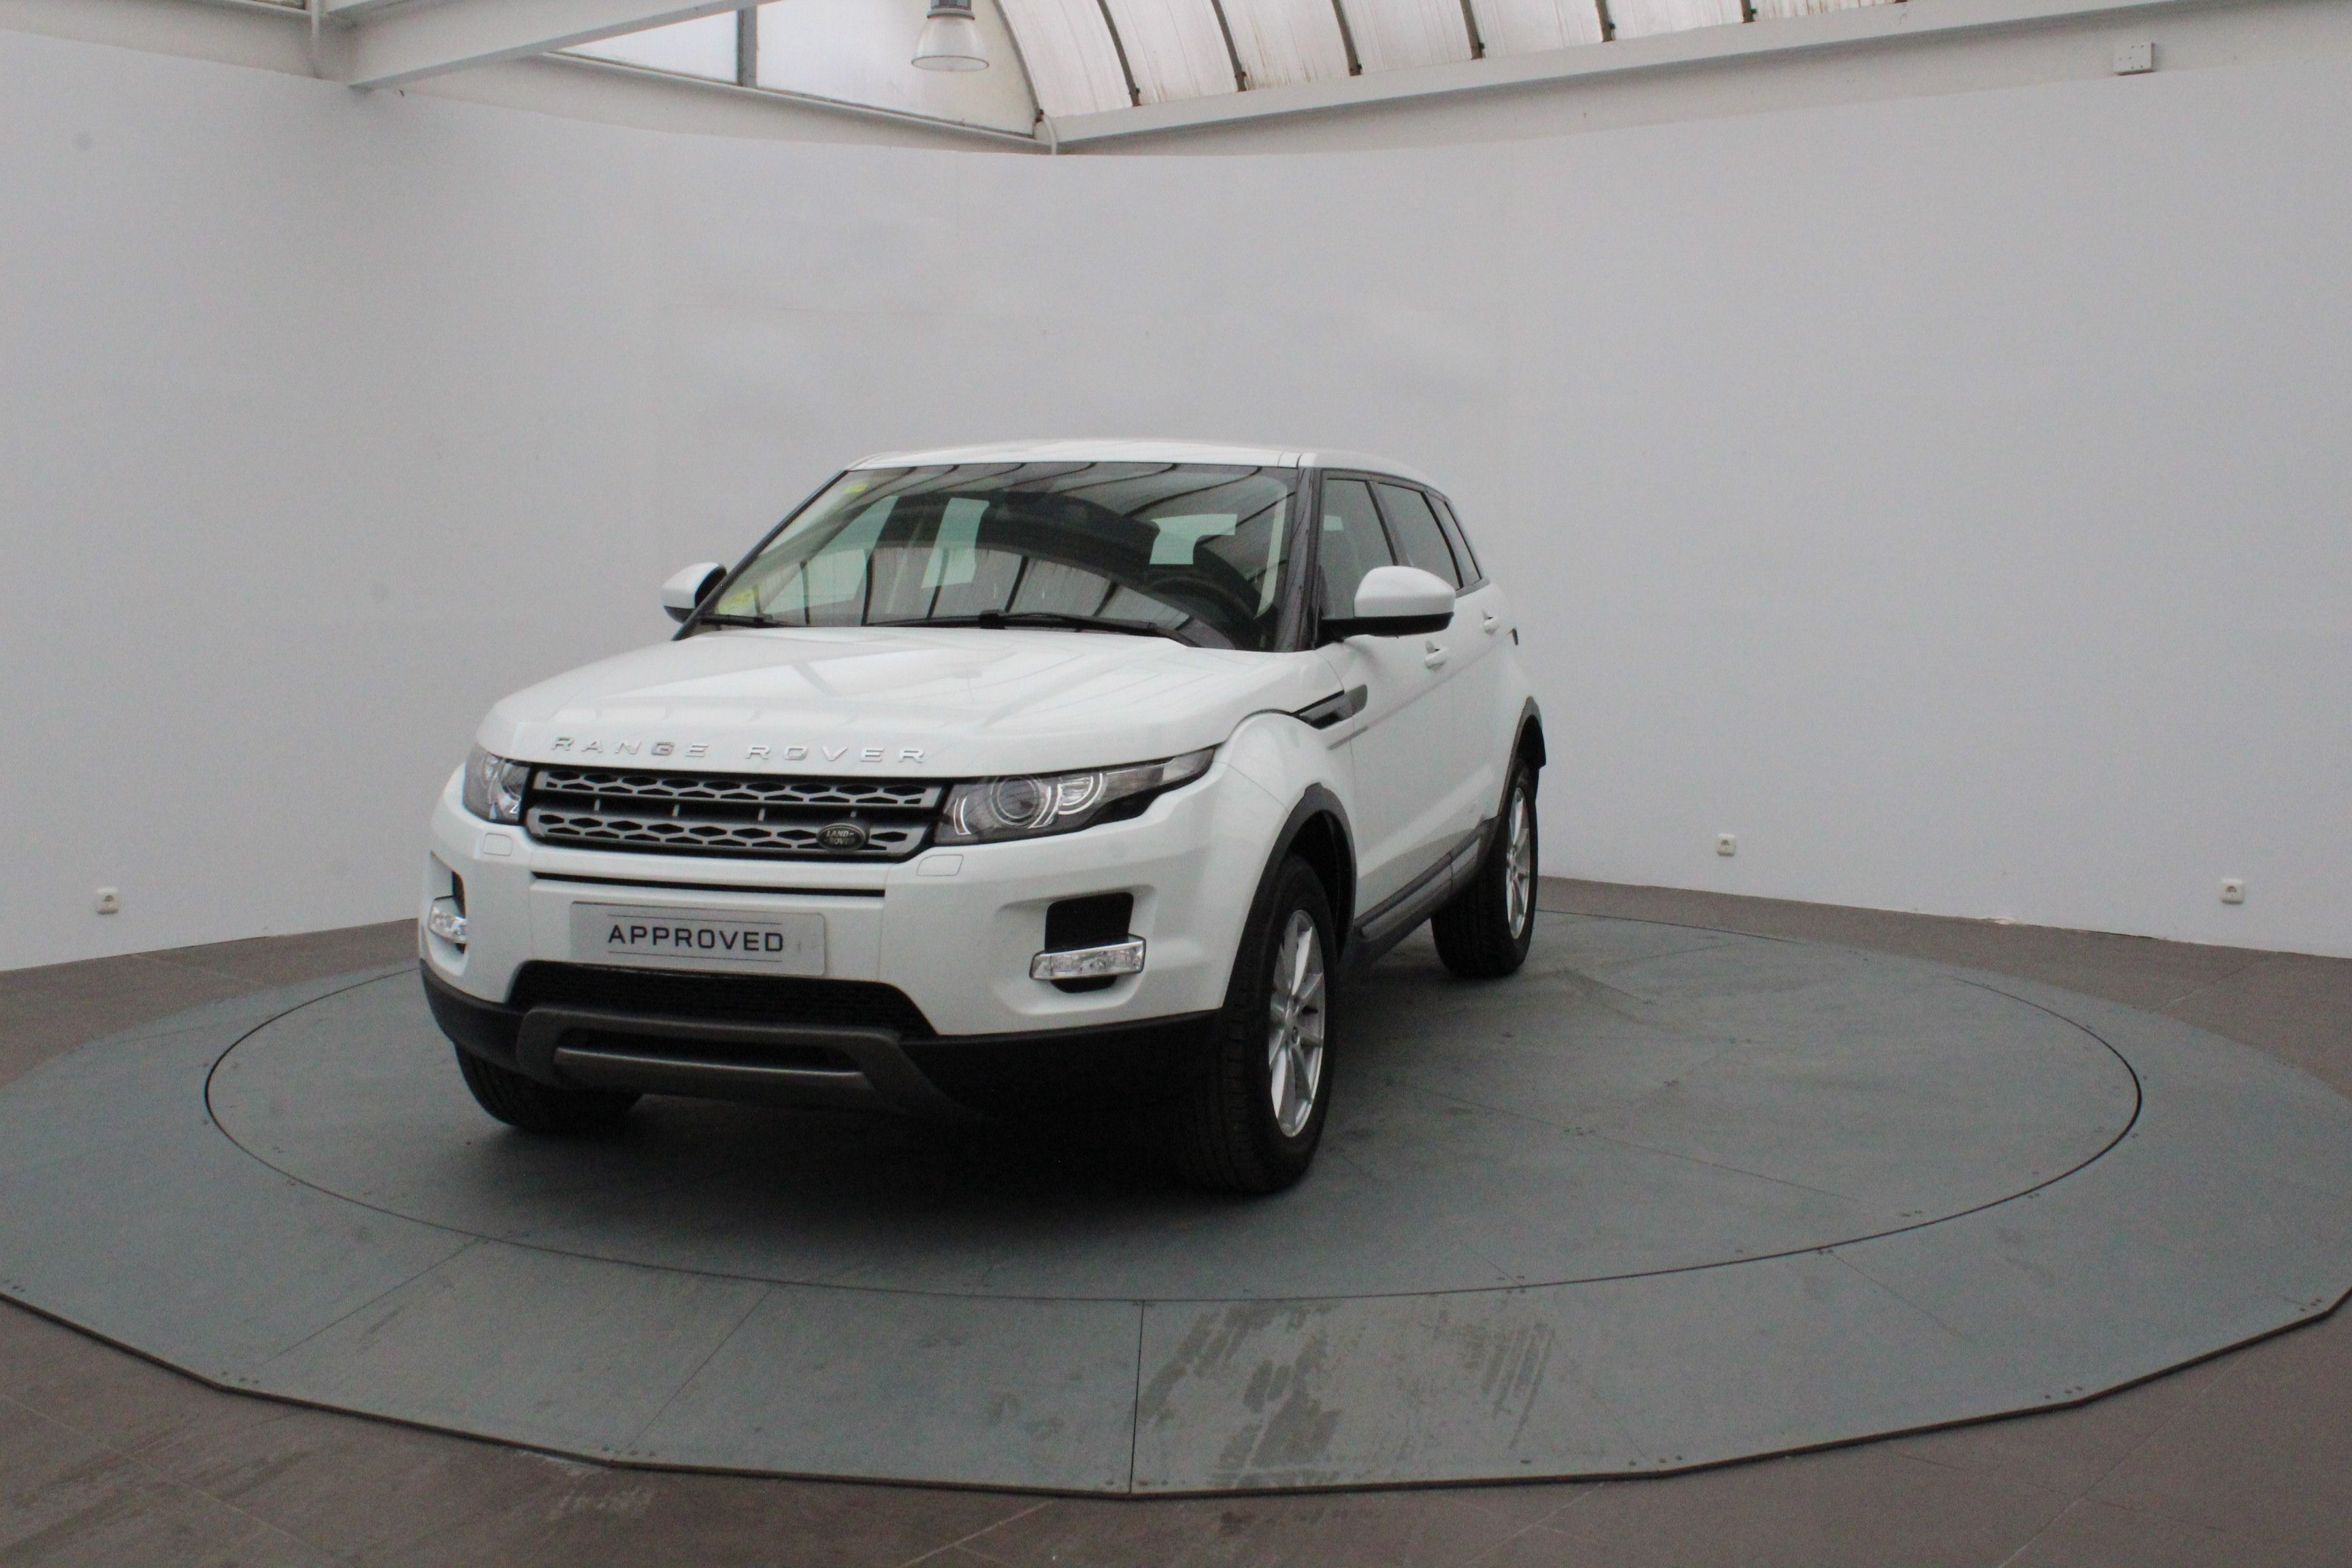 RANGE ROVER EVOQUE APPROVED PURE 4x4 2.2L 150 CV MANUAL